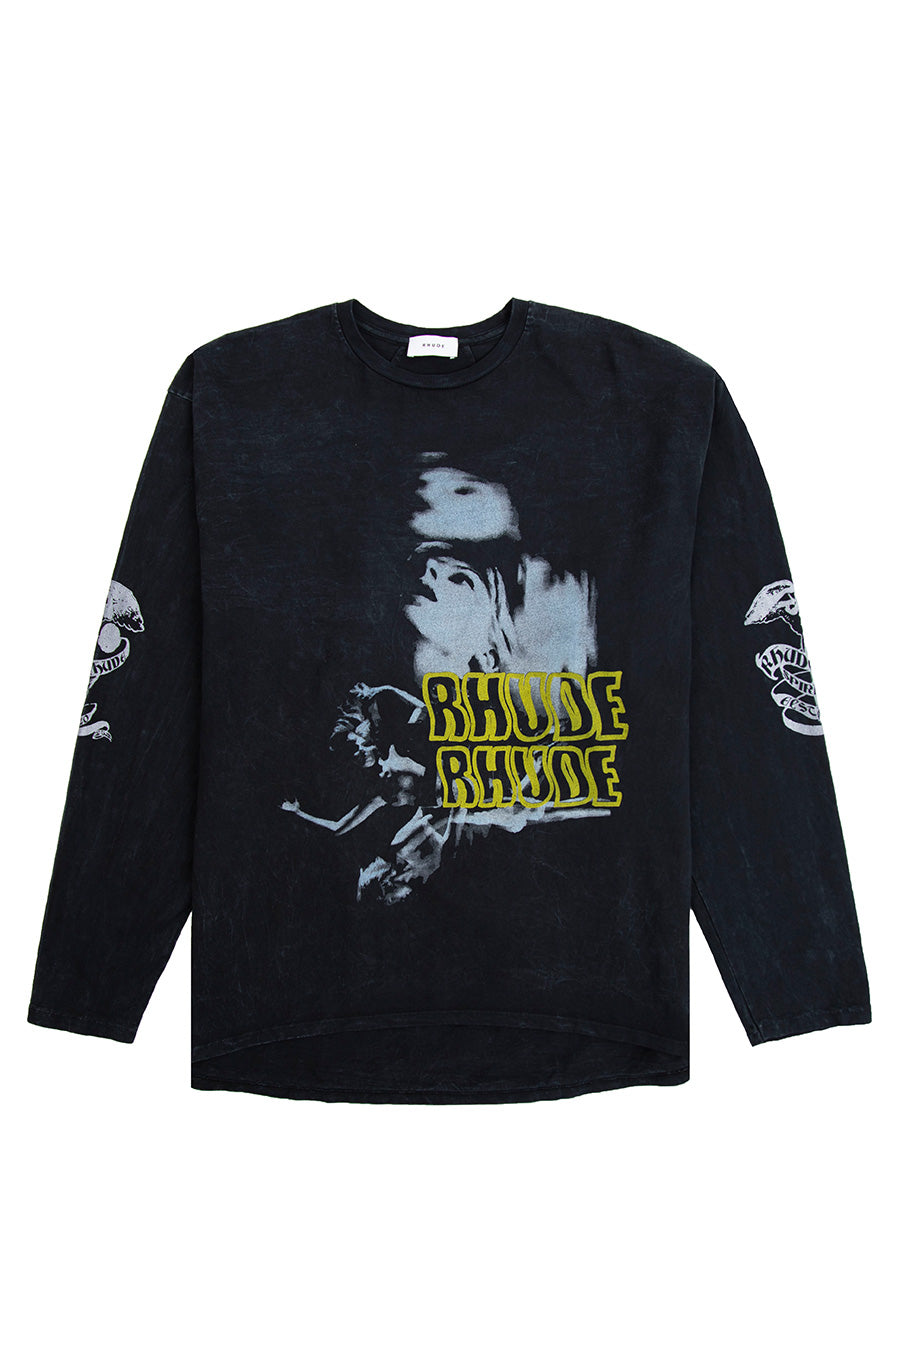 Rhude - Black Blue Woman Long Sleeve T-Shirt | 1032 SPACE